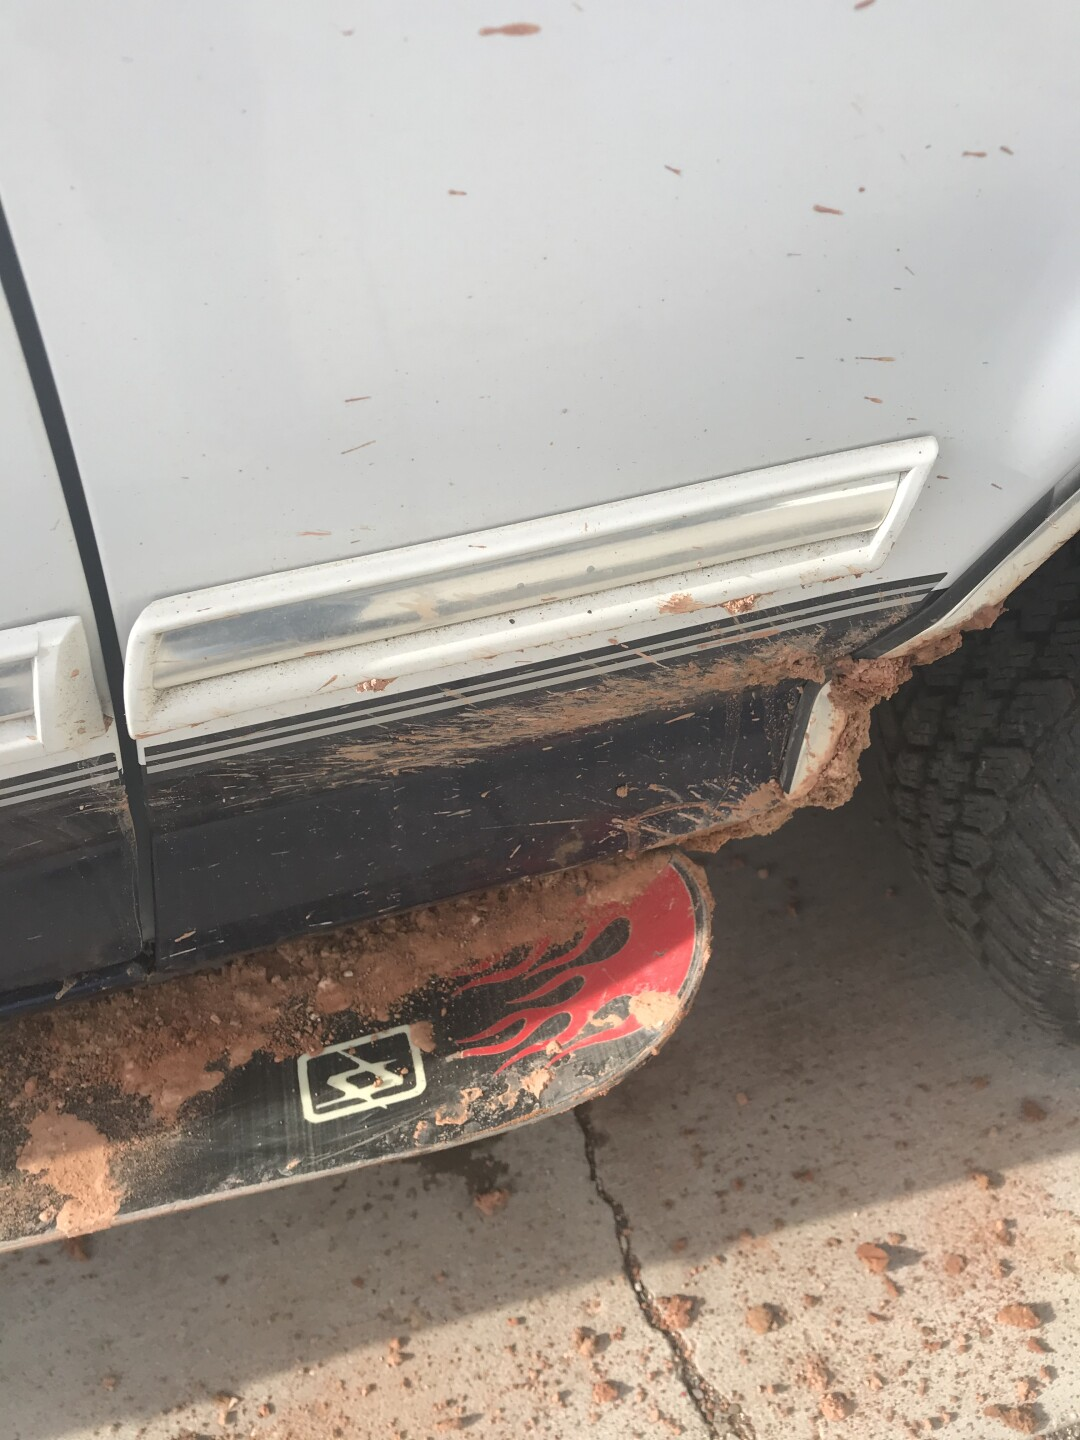 Photos: Abandoned truck found near remote Utah trailhead; Authorities seeking owner